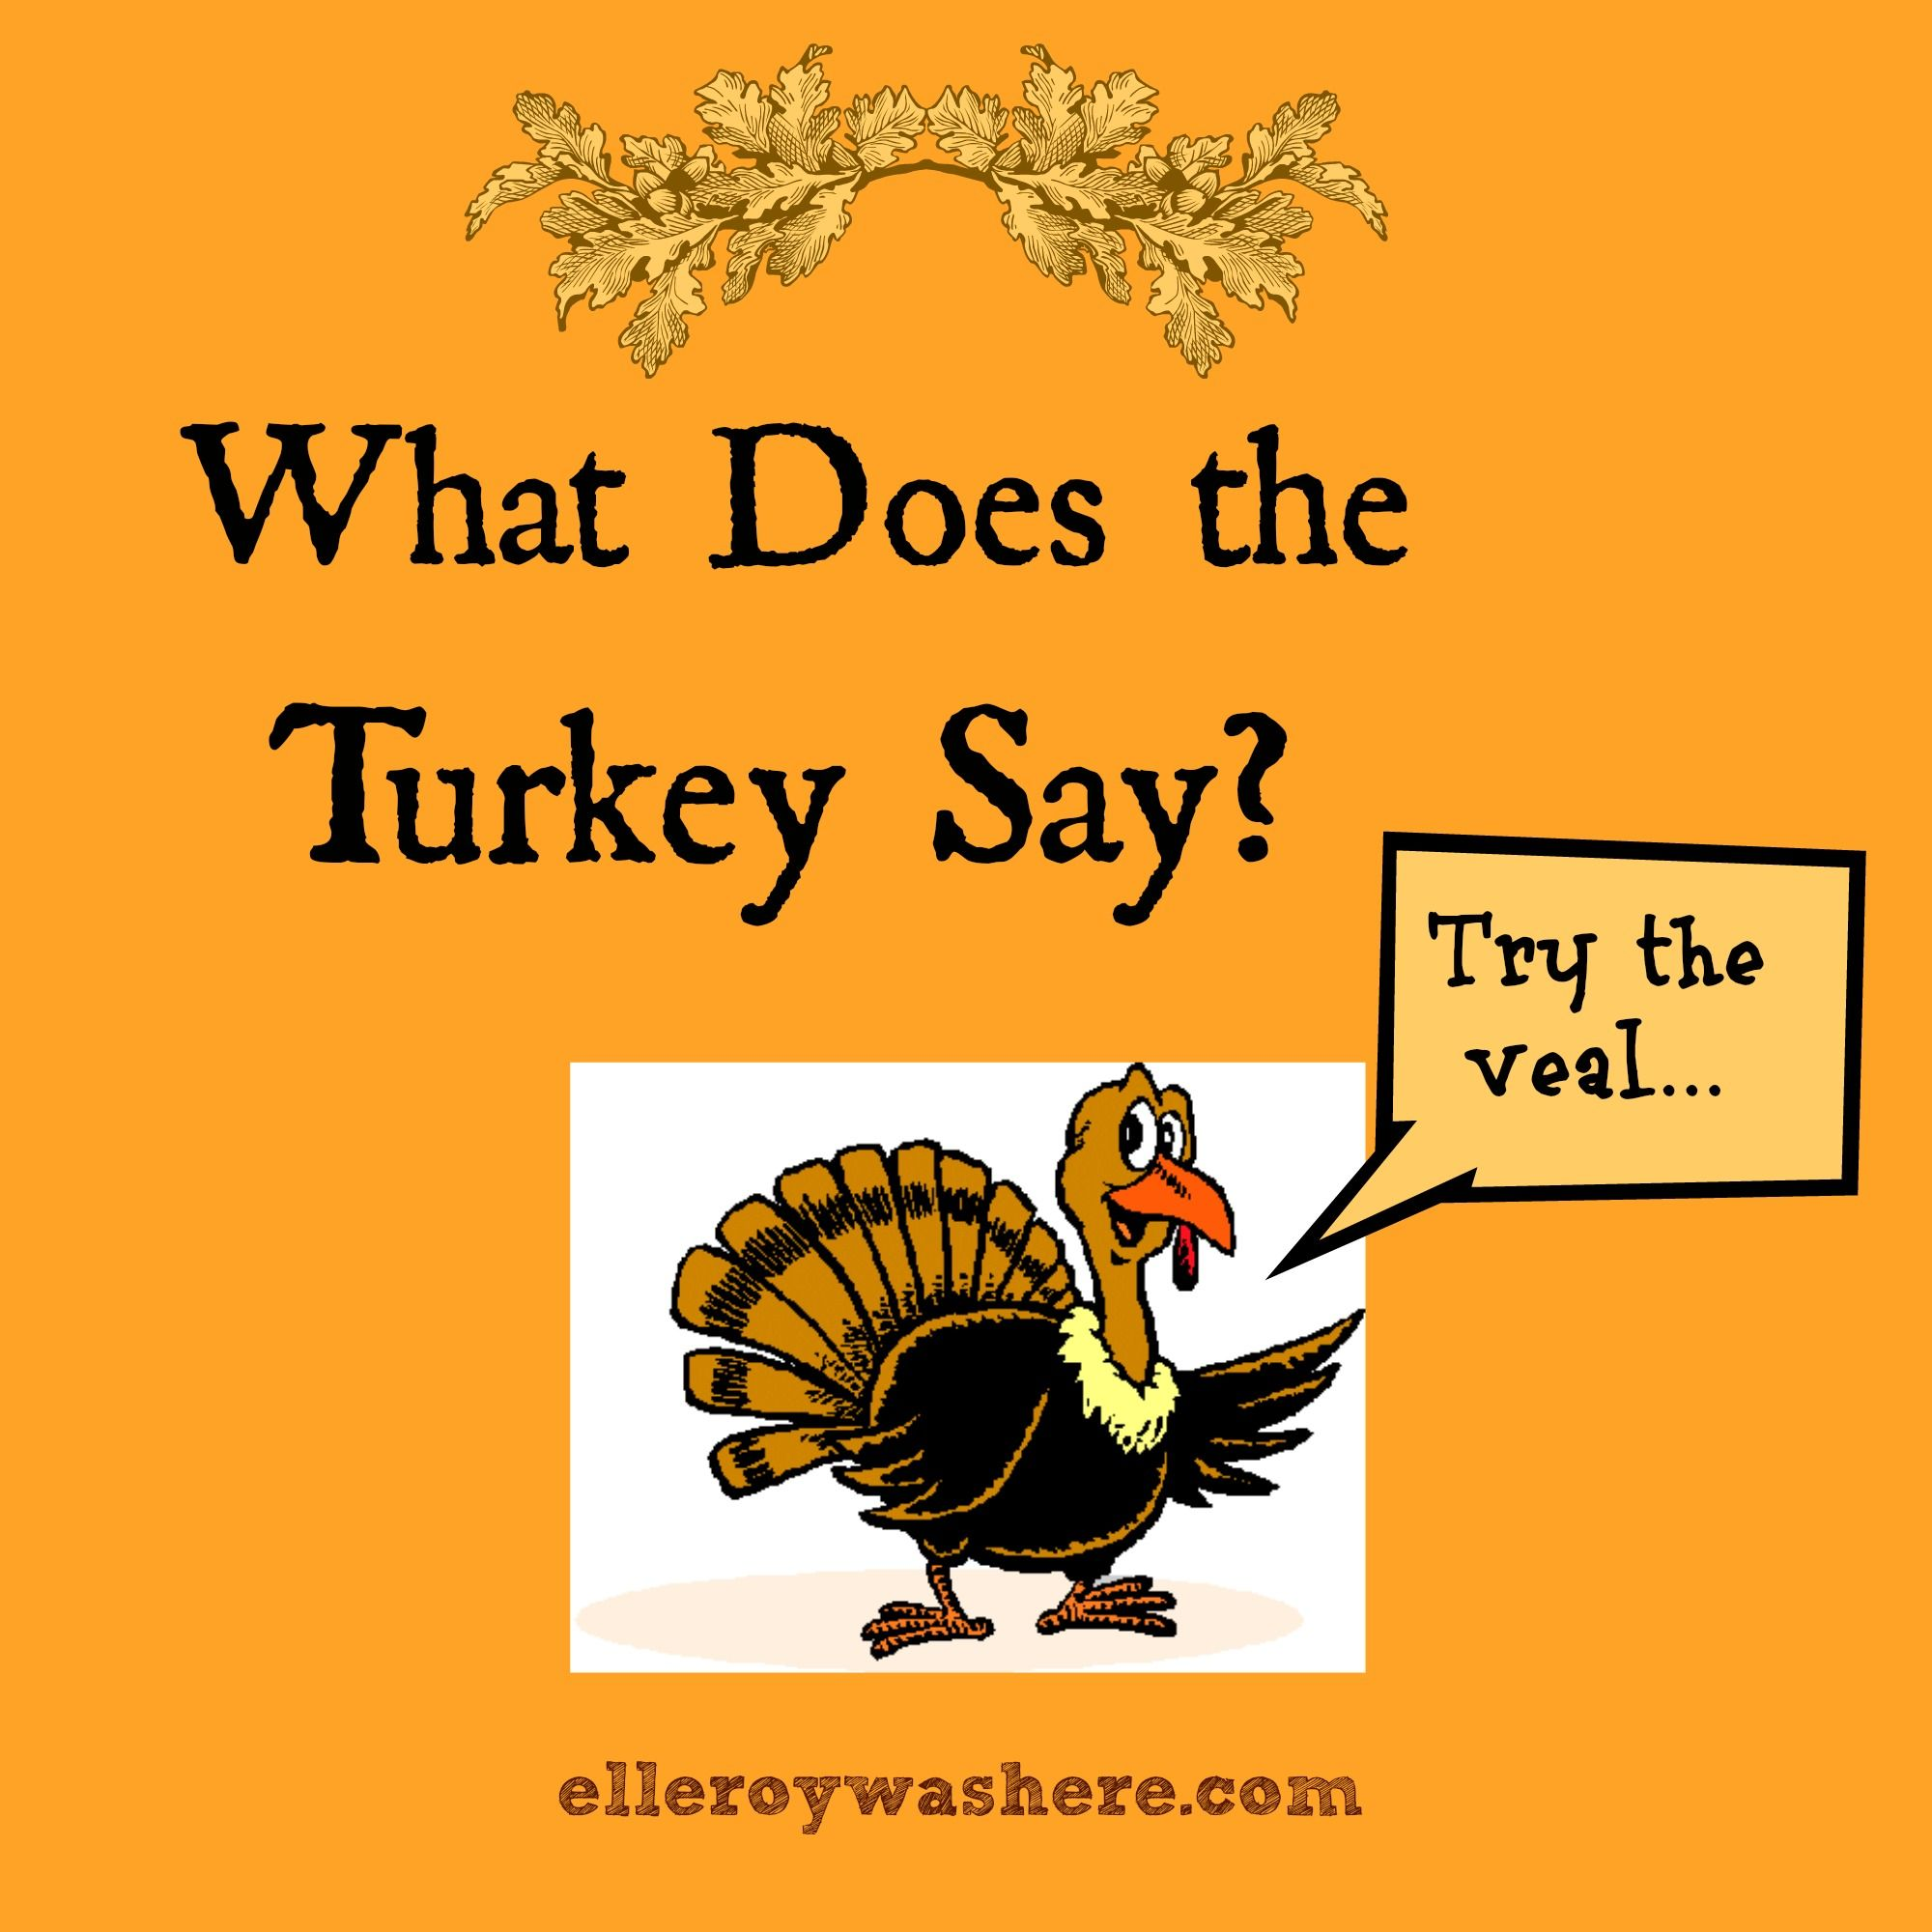 What Does the Turkey Say? (With images) Sayings, Funny